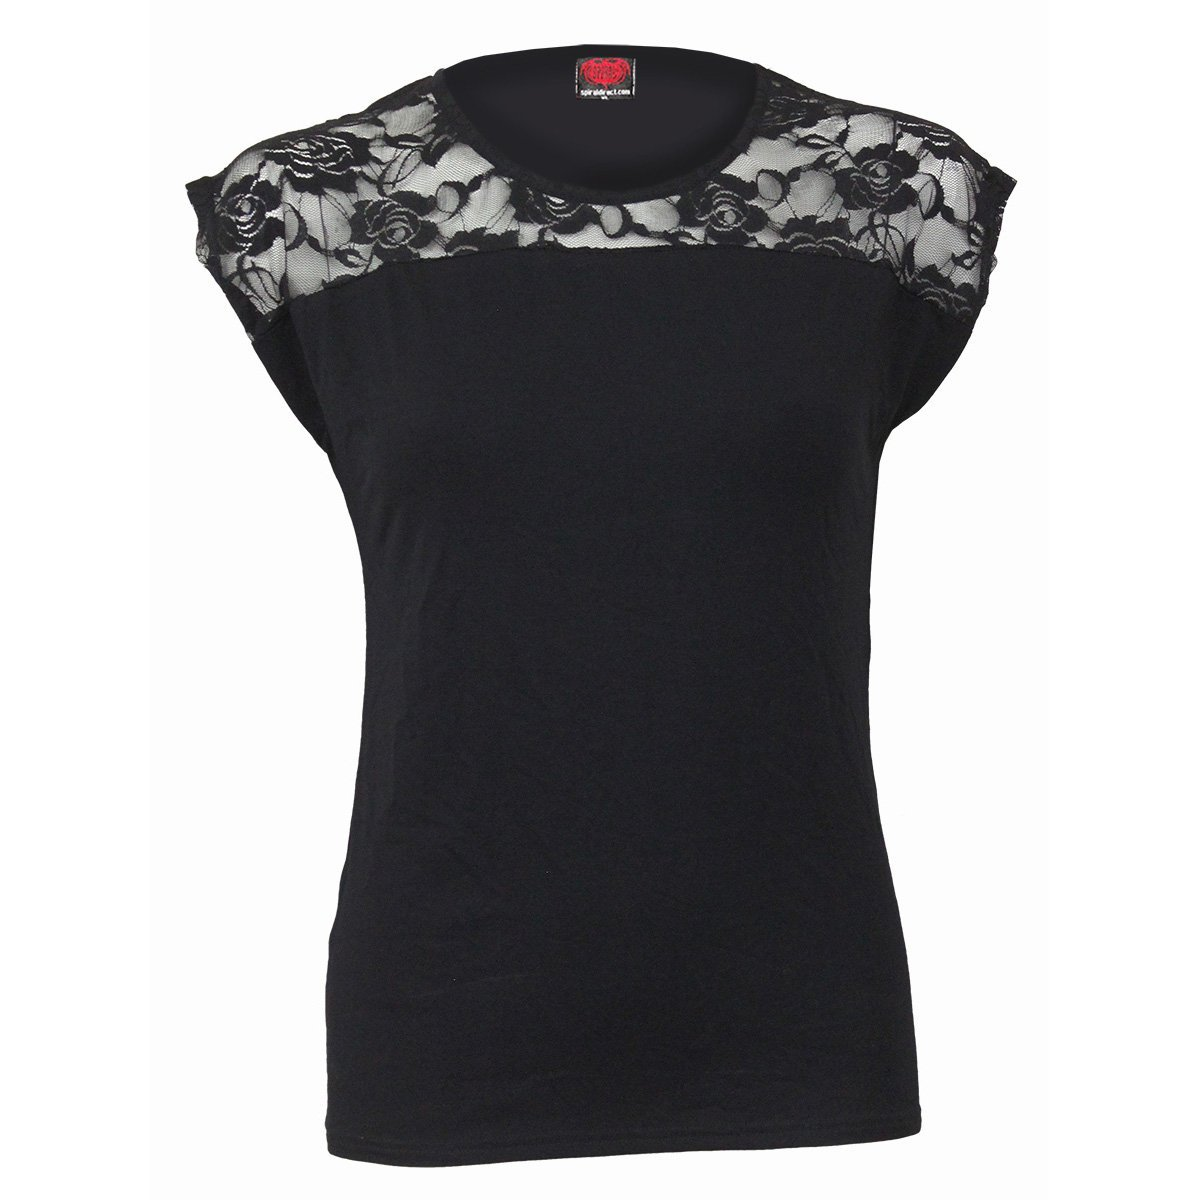 Urban Gothic Women's Lace Layered Black Top - Rebels Depot